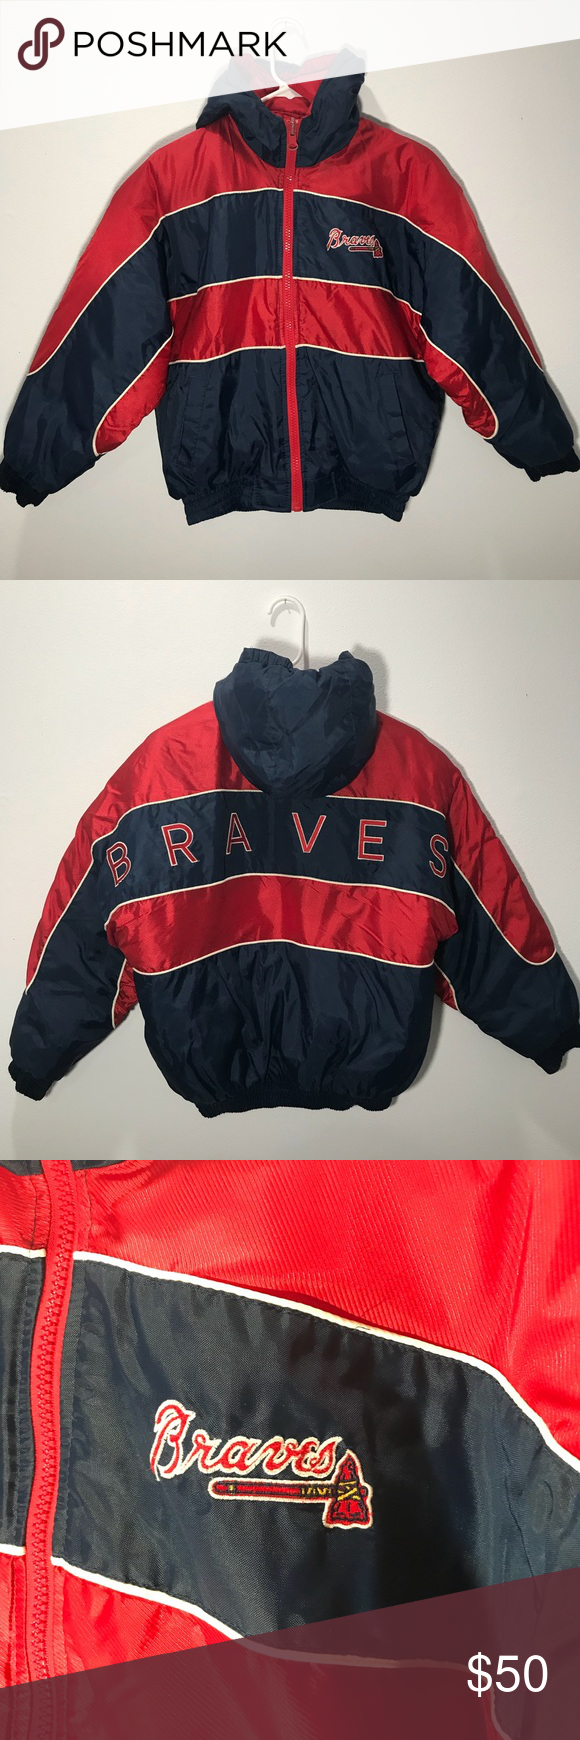 Pro Player Atlanta Braves Jacket Boy S L Women S S Brand Pro Player Genuine Merchandise Color Navy Red Condi With Images Red Jacket Outfit Jacket Brands Jacket Outfits